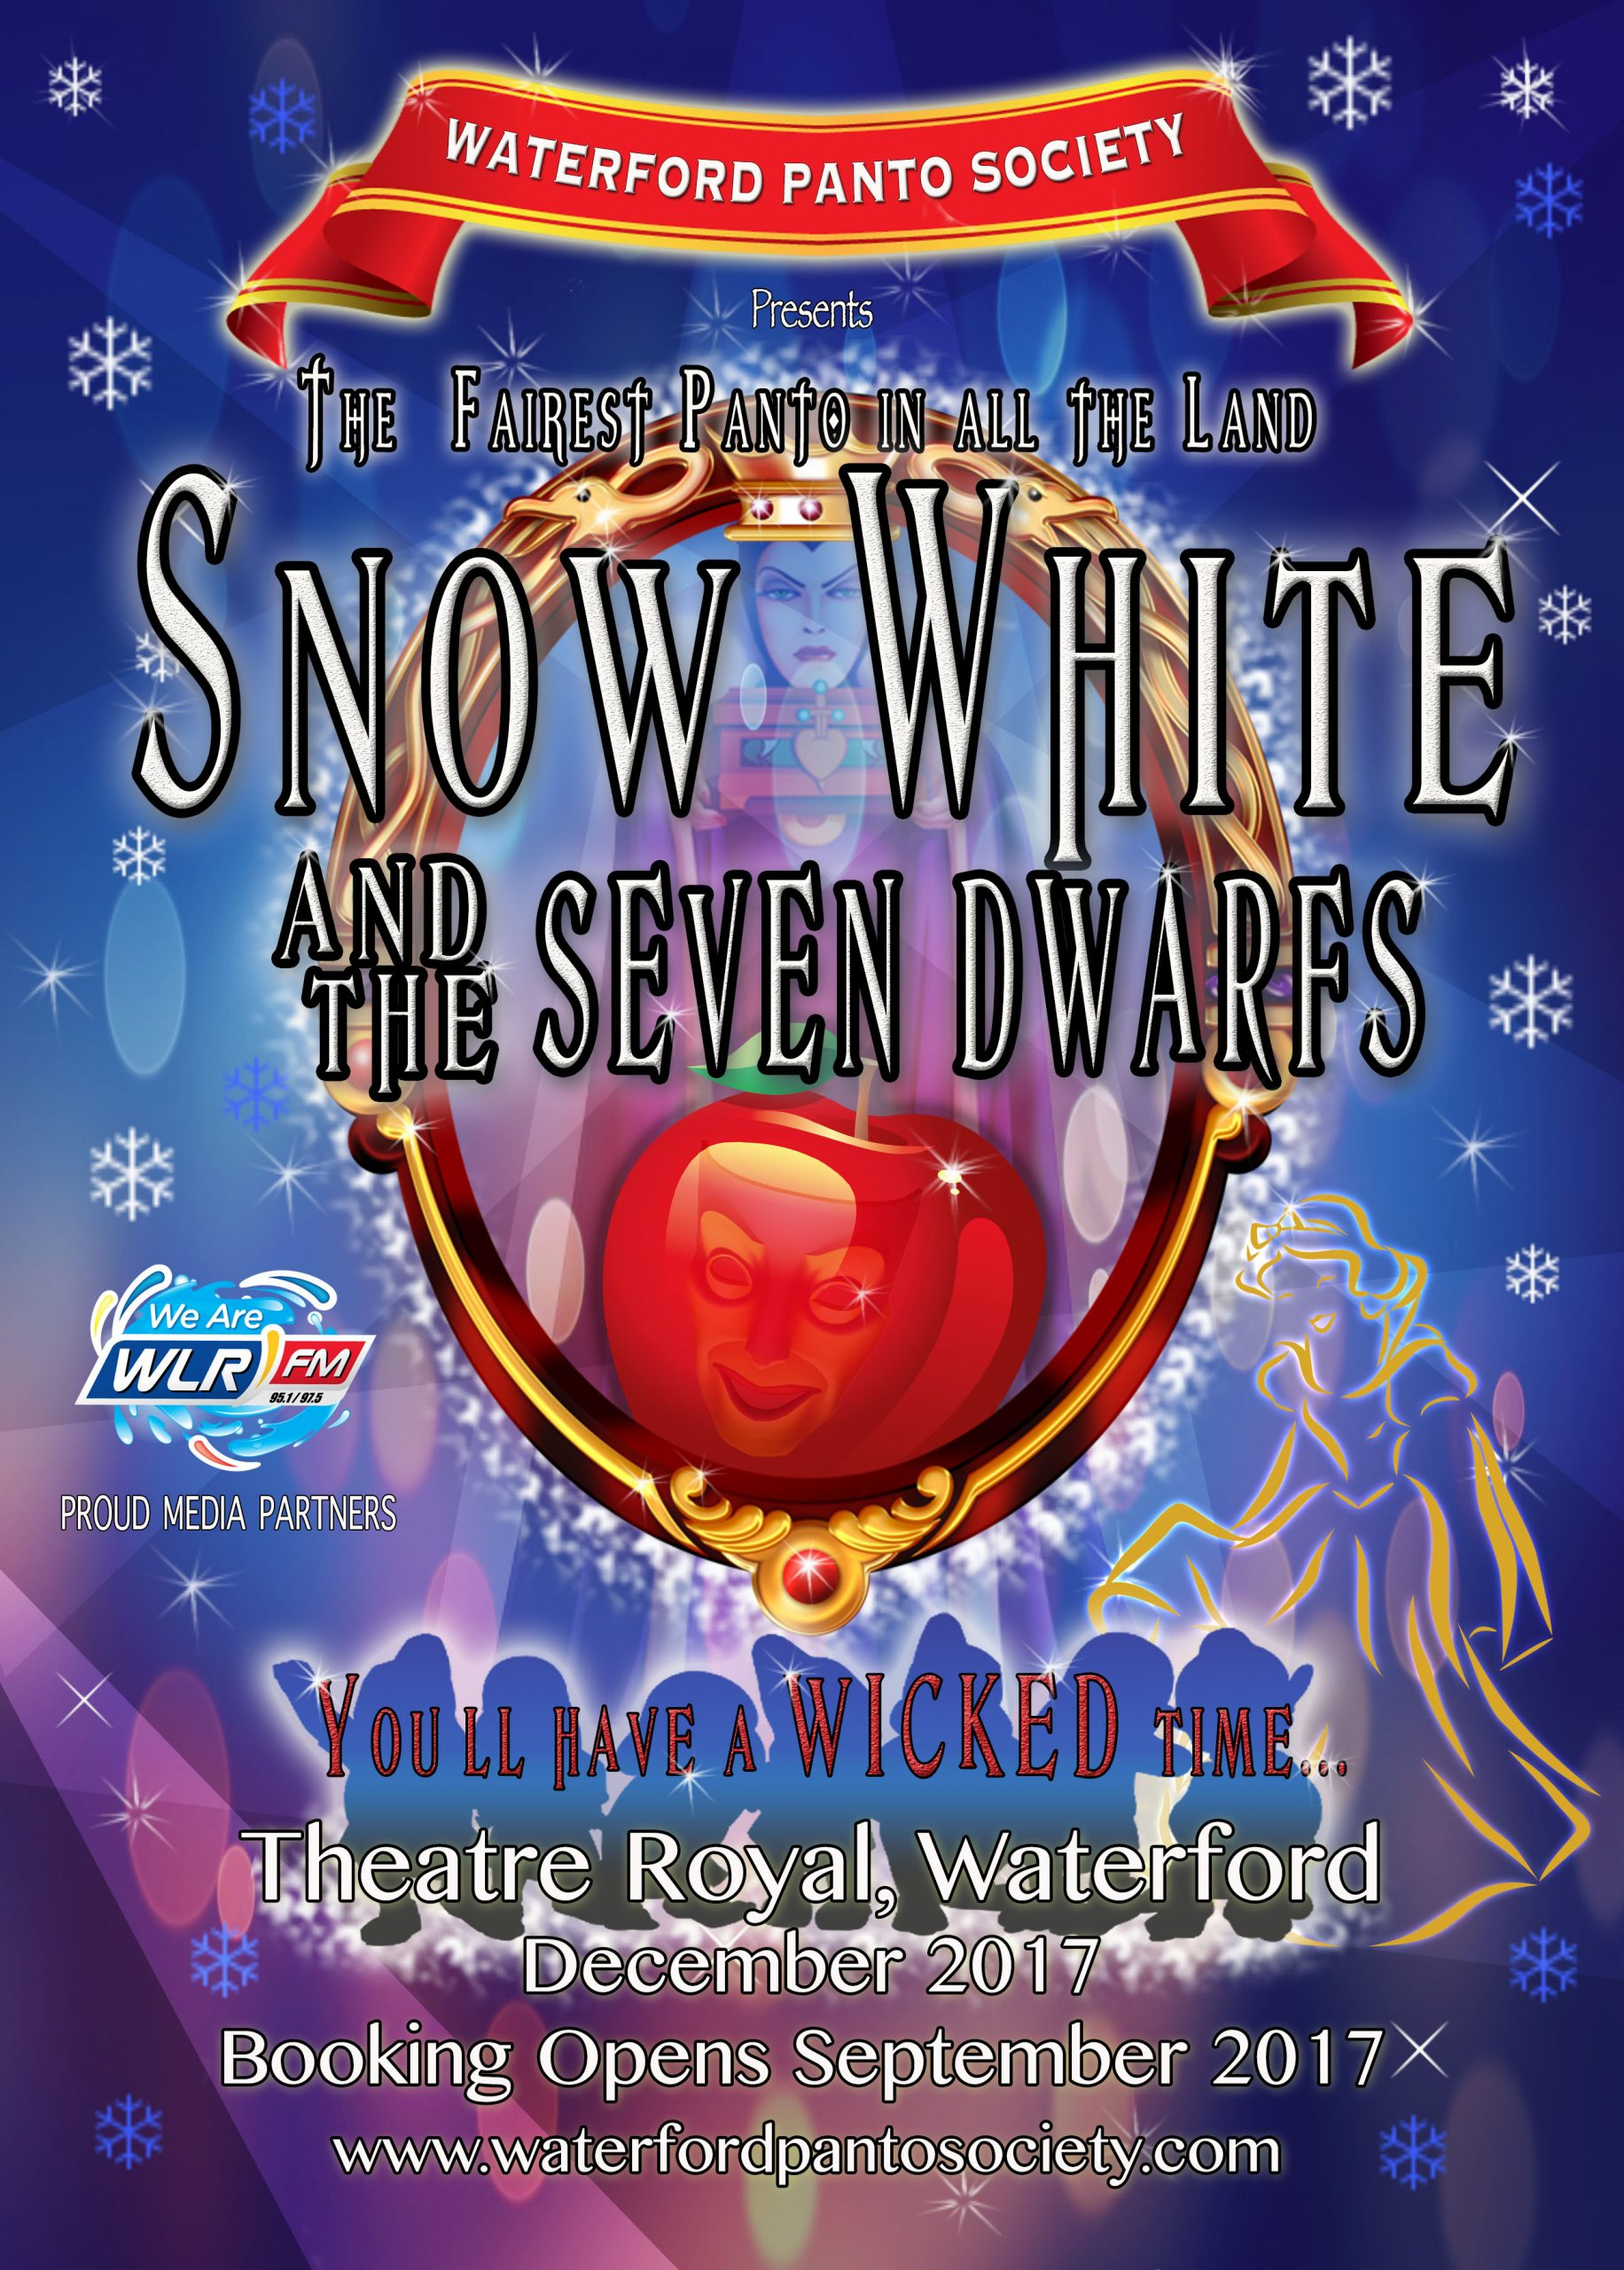 Snow White and The Seven Dwarves at The Theatre Royal